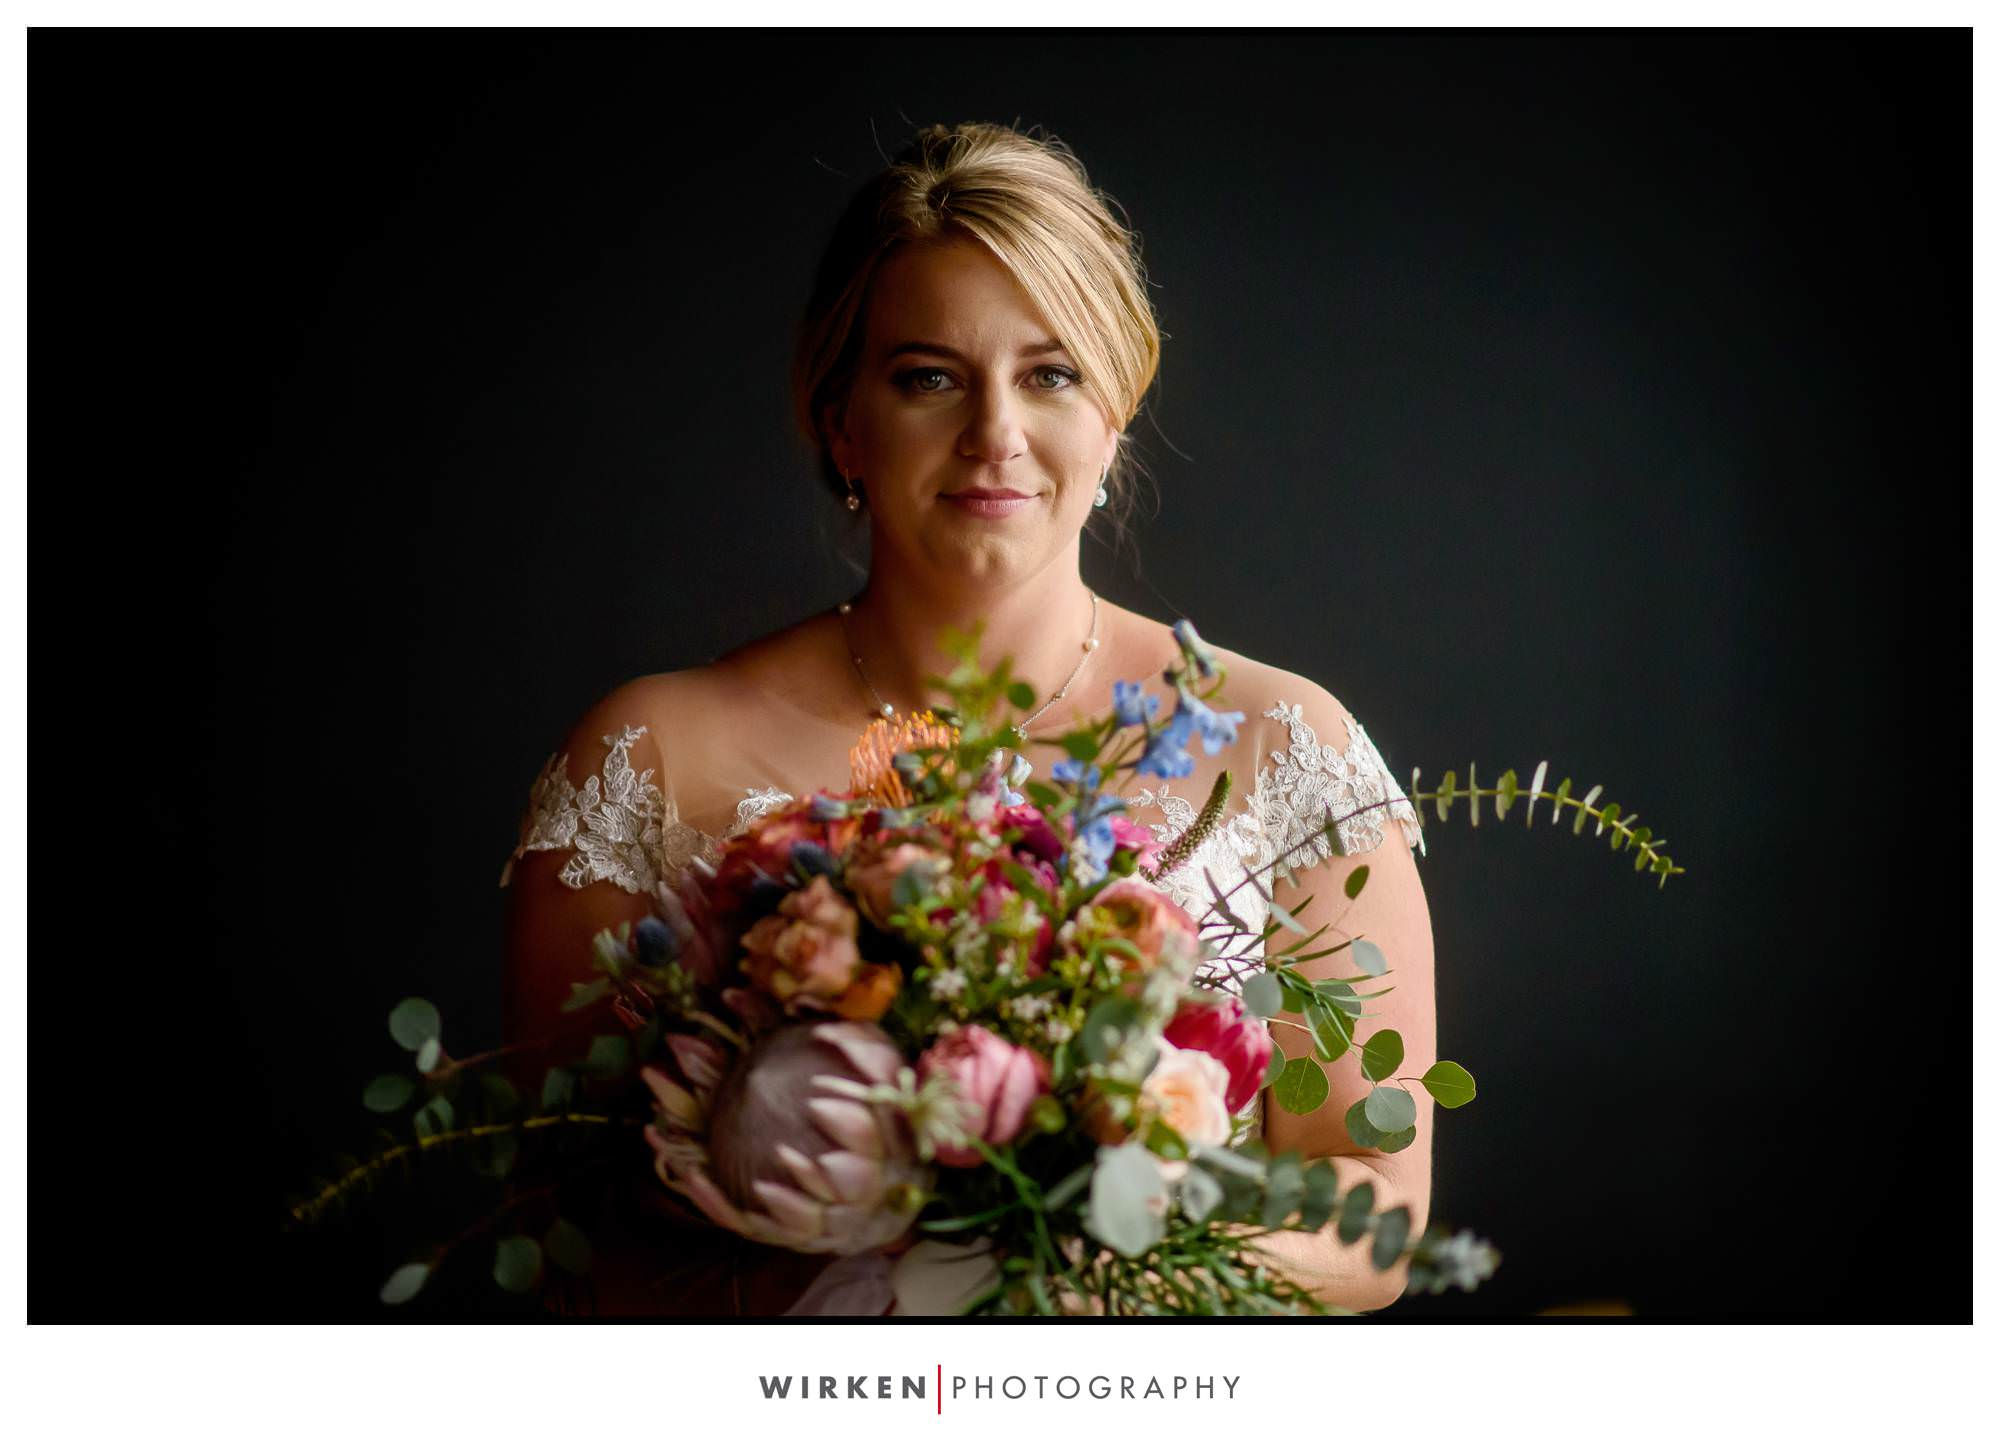 Leah and her beautiful wedding flowers before her Kansas City wedding